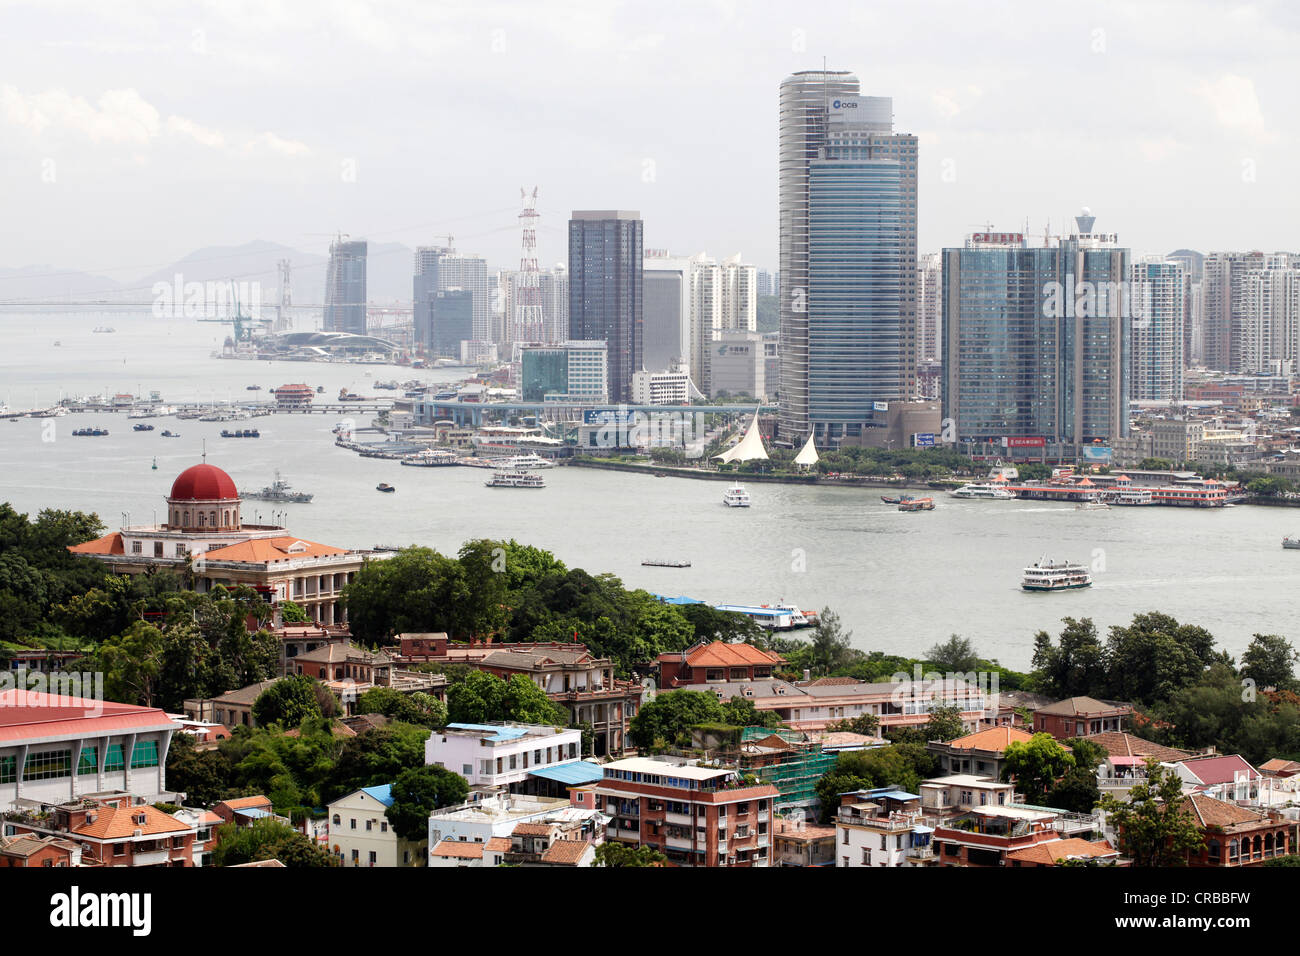 View of the skyline of Xiamen as seen from Gulangyu Island, Xiamen, also known as Amoy, Fujian province, China, - Stock Image